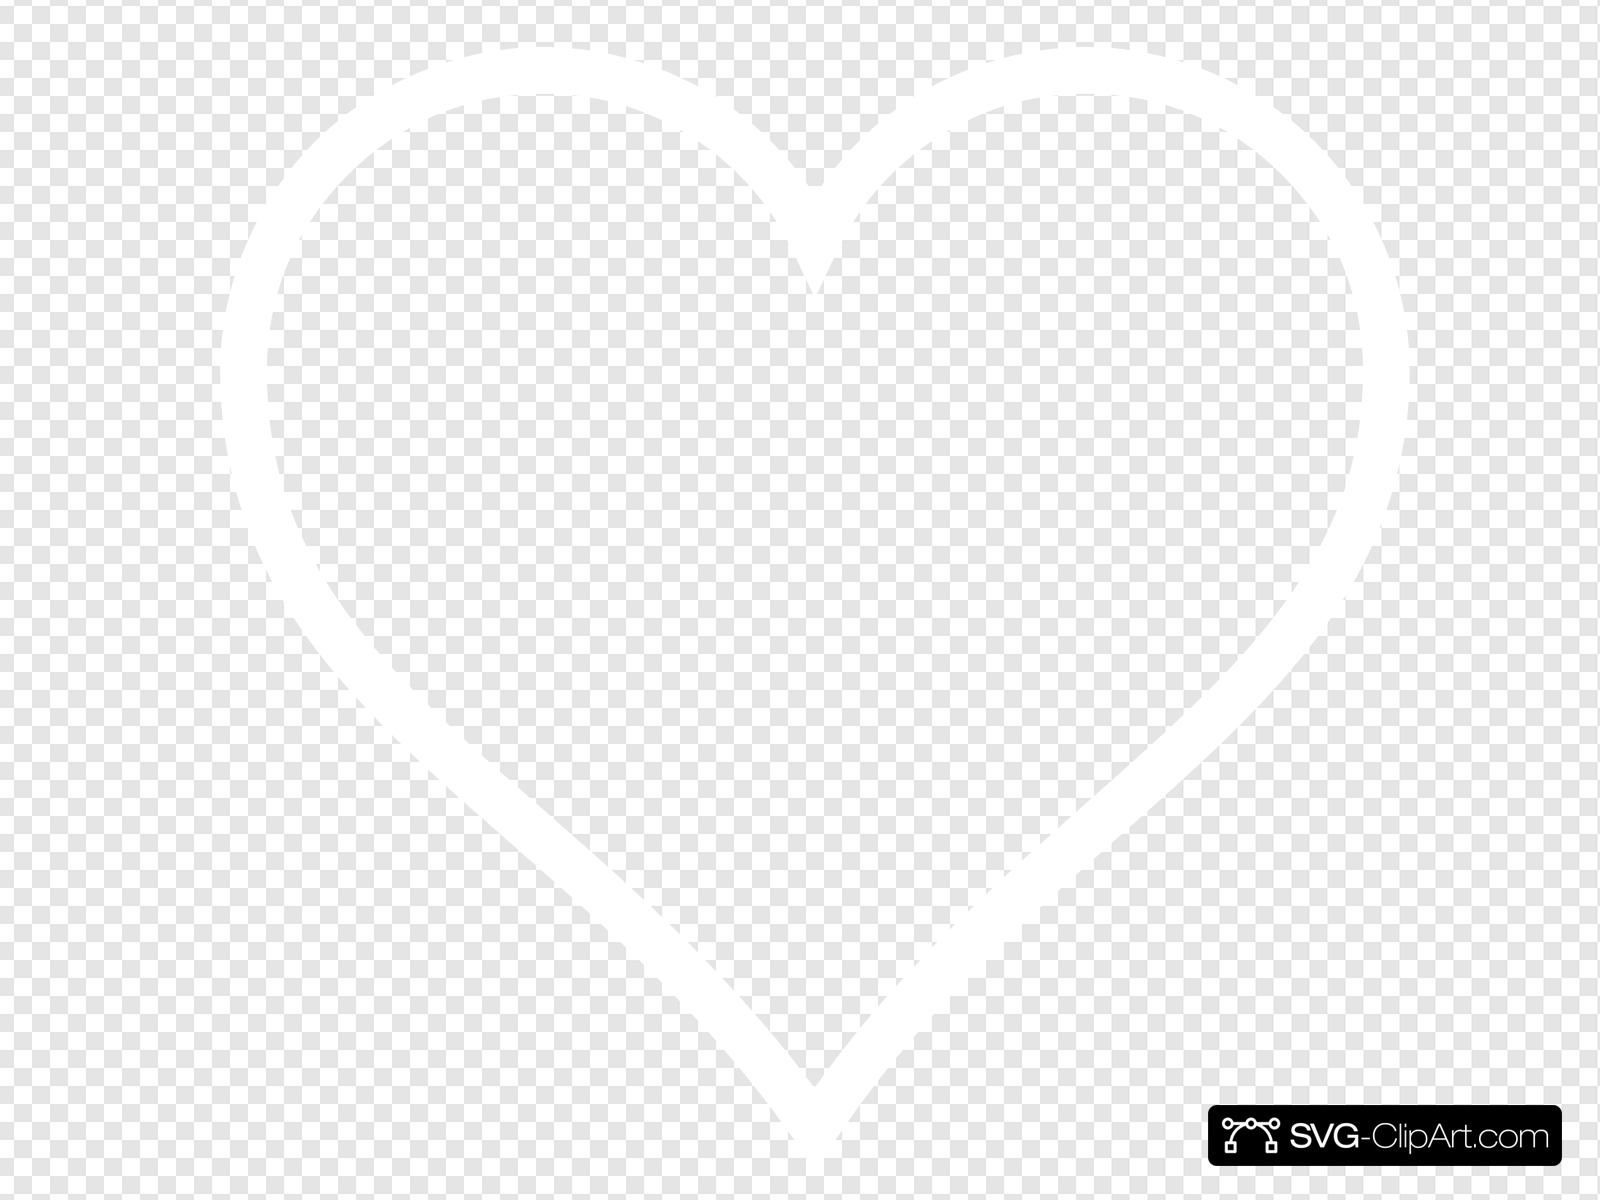 White Heart Outline Clip art, Icon and SVG.